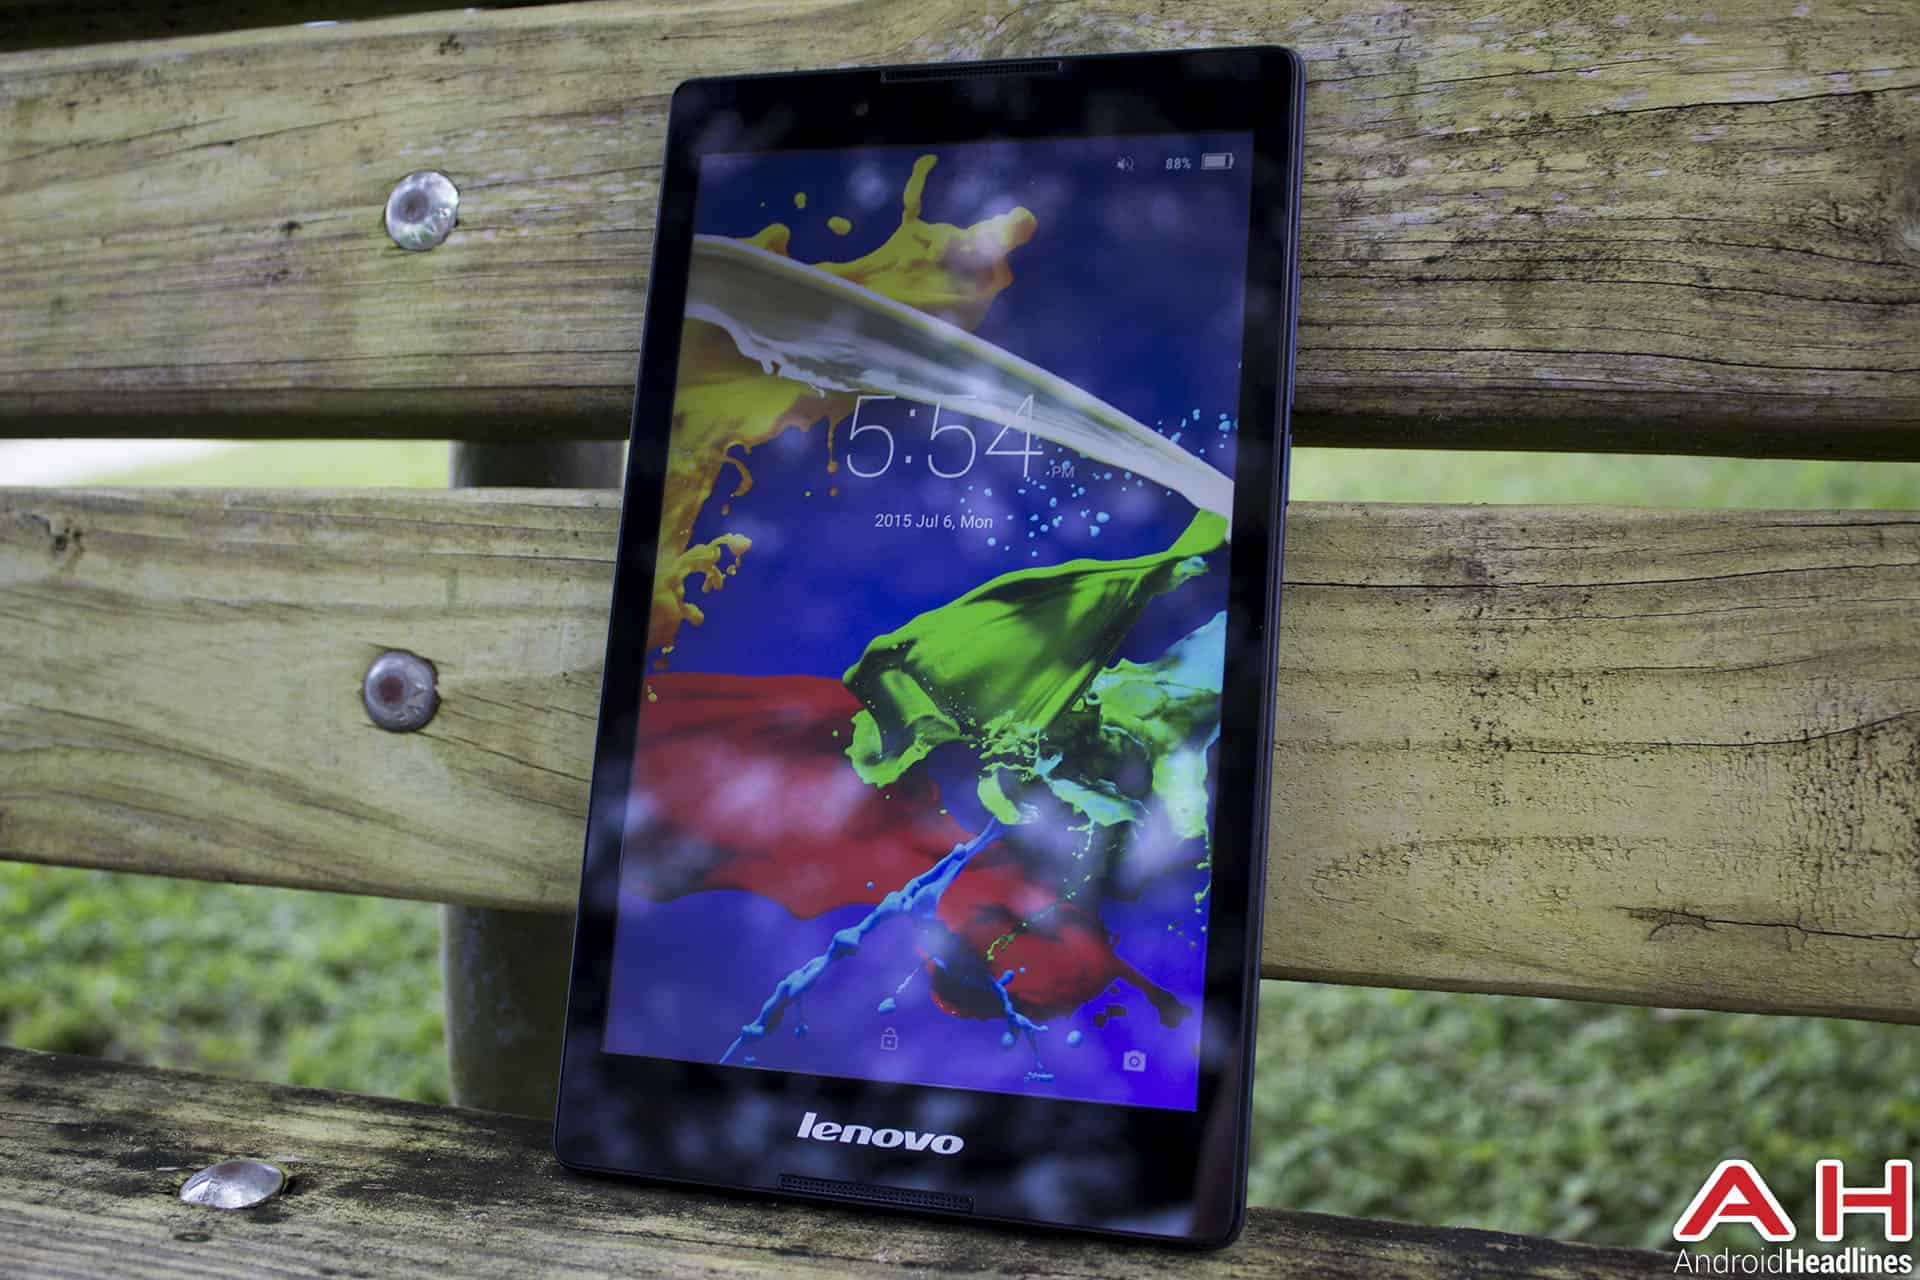 Lenovo-Tab-2-A8-Review-AH-06